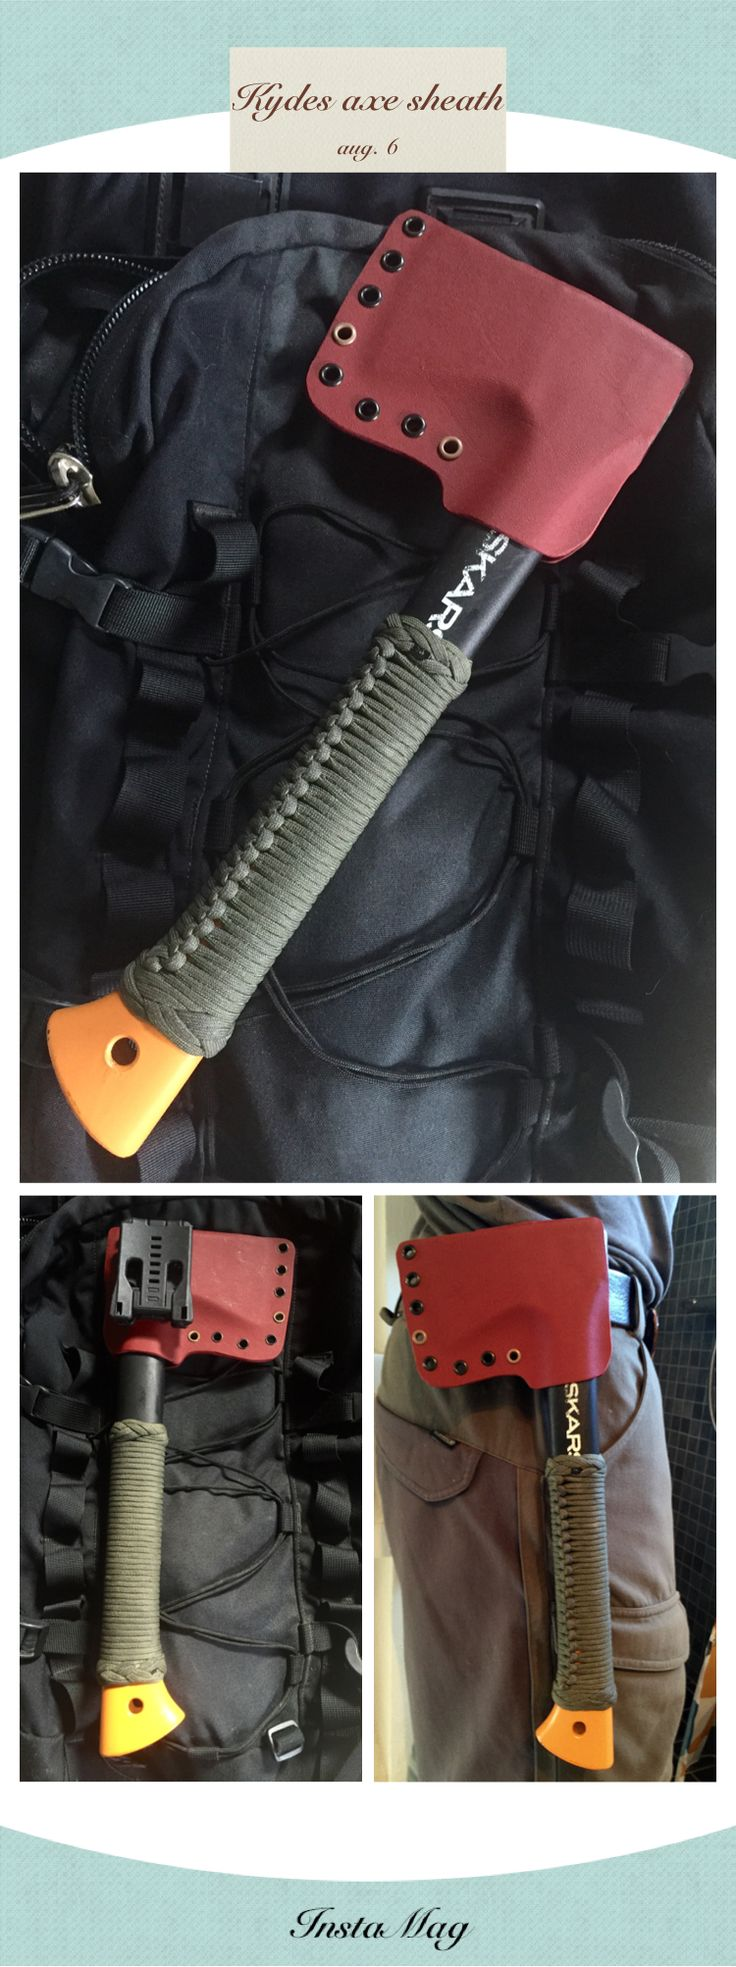 Kydex sheath for fiskars axe